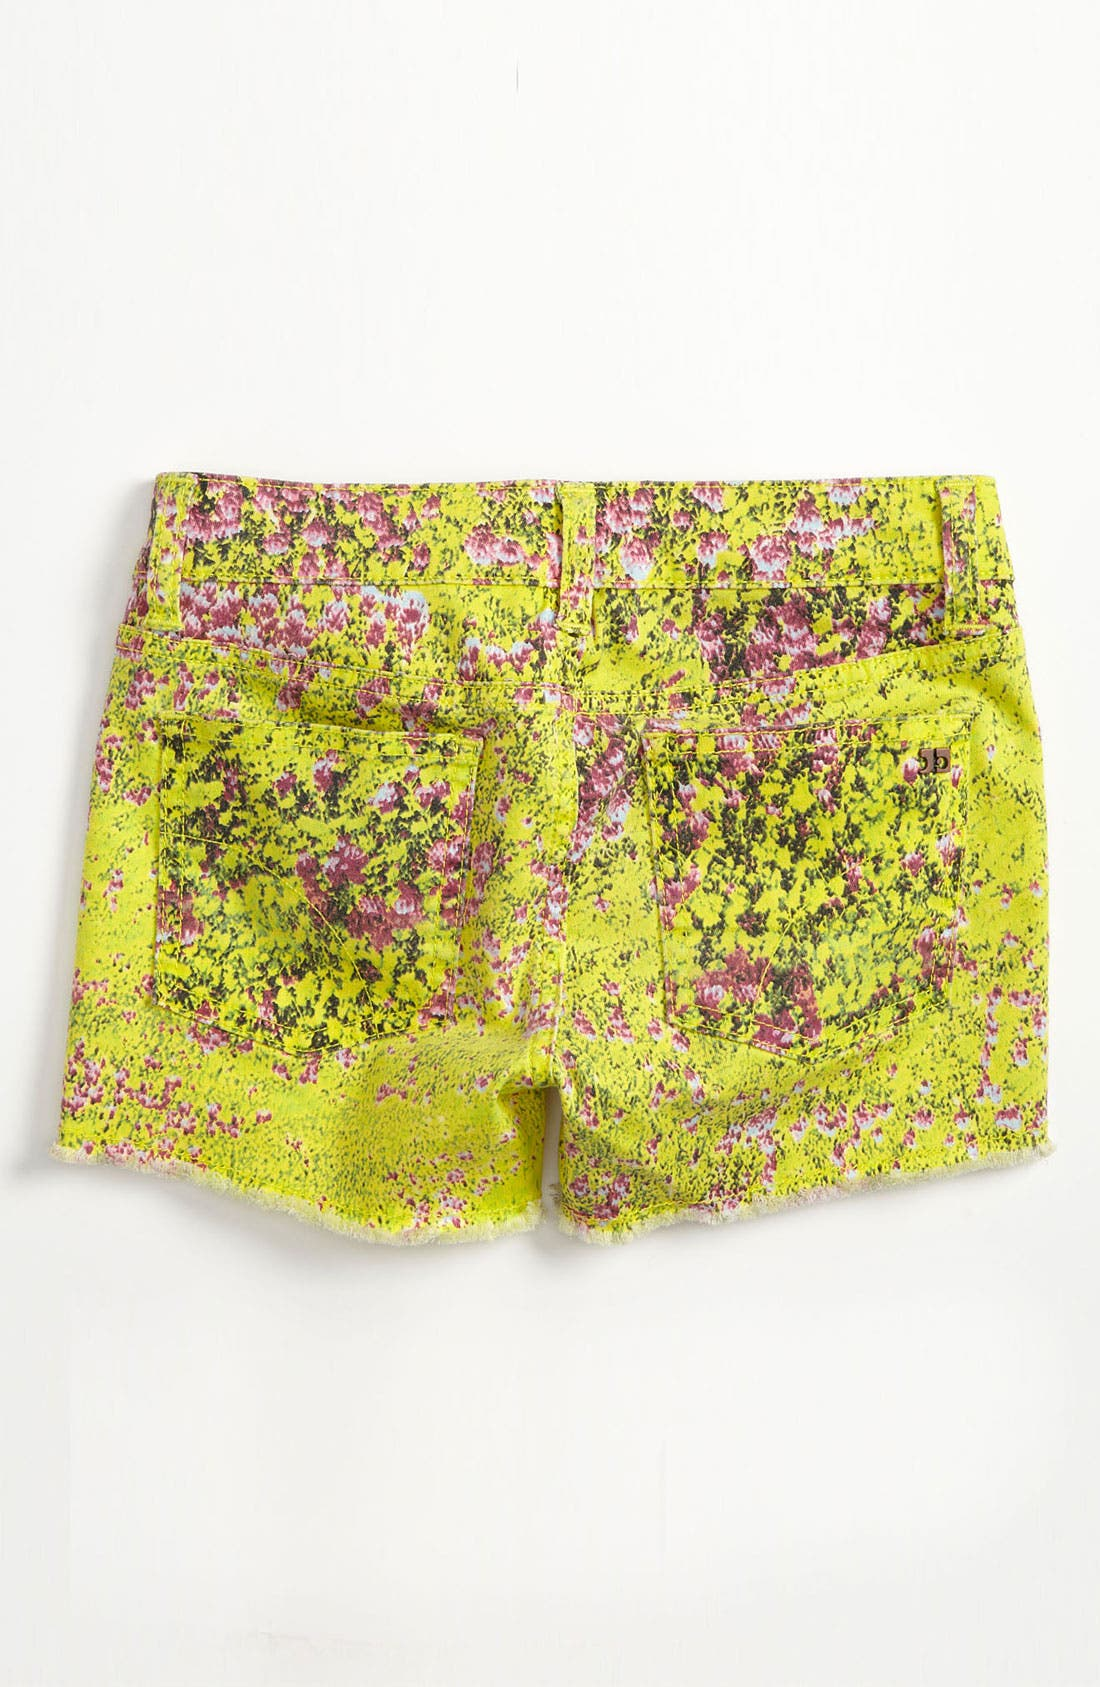 Alternate Image 1 Selected - Joe's Print Shorts (Big Girls)